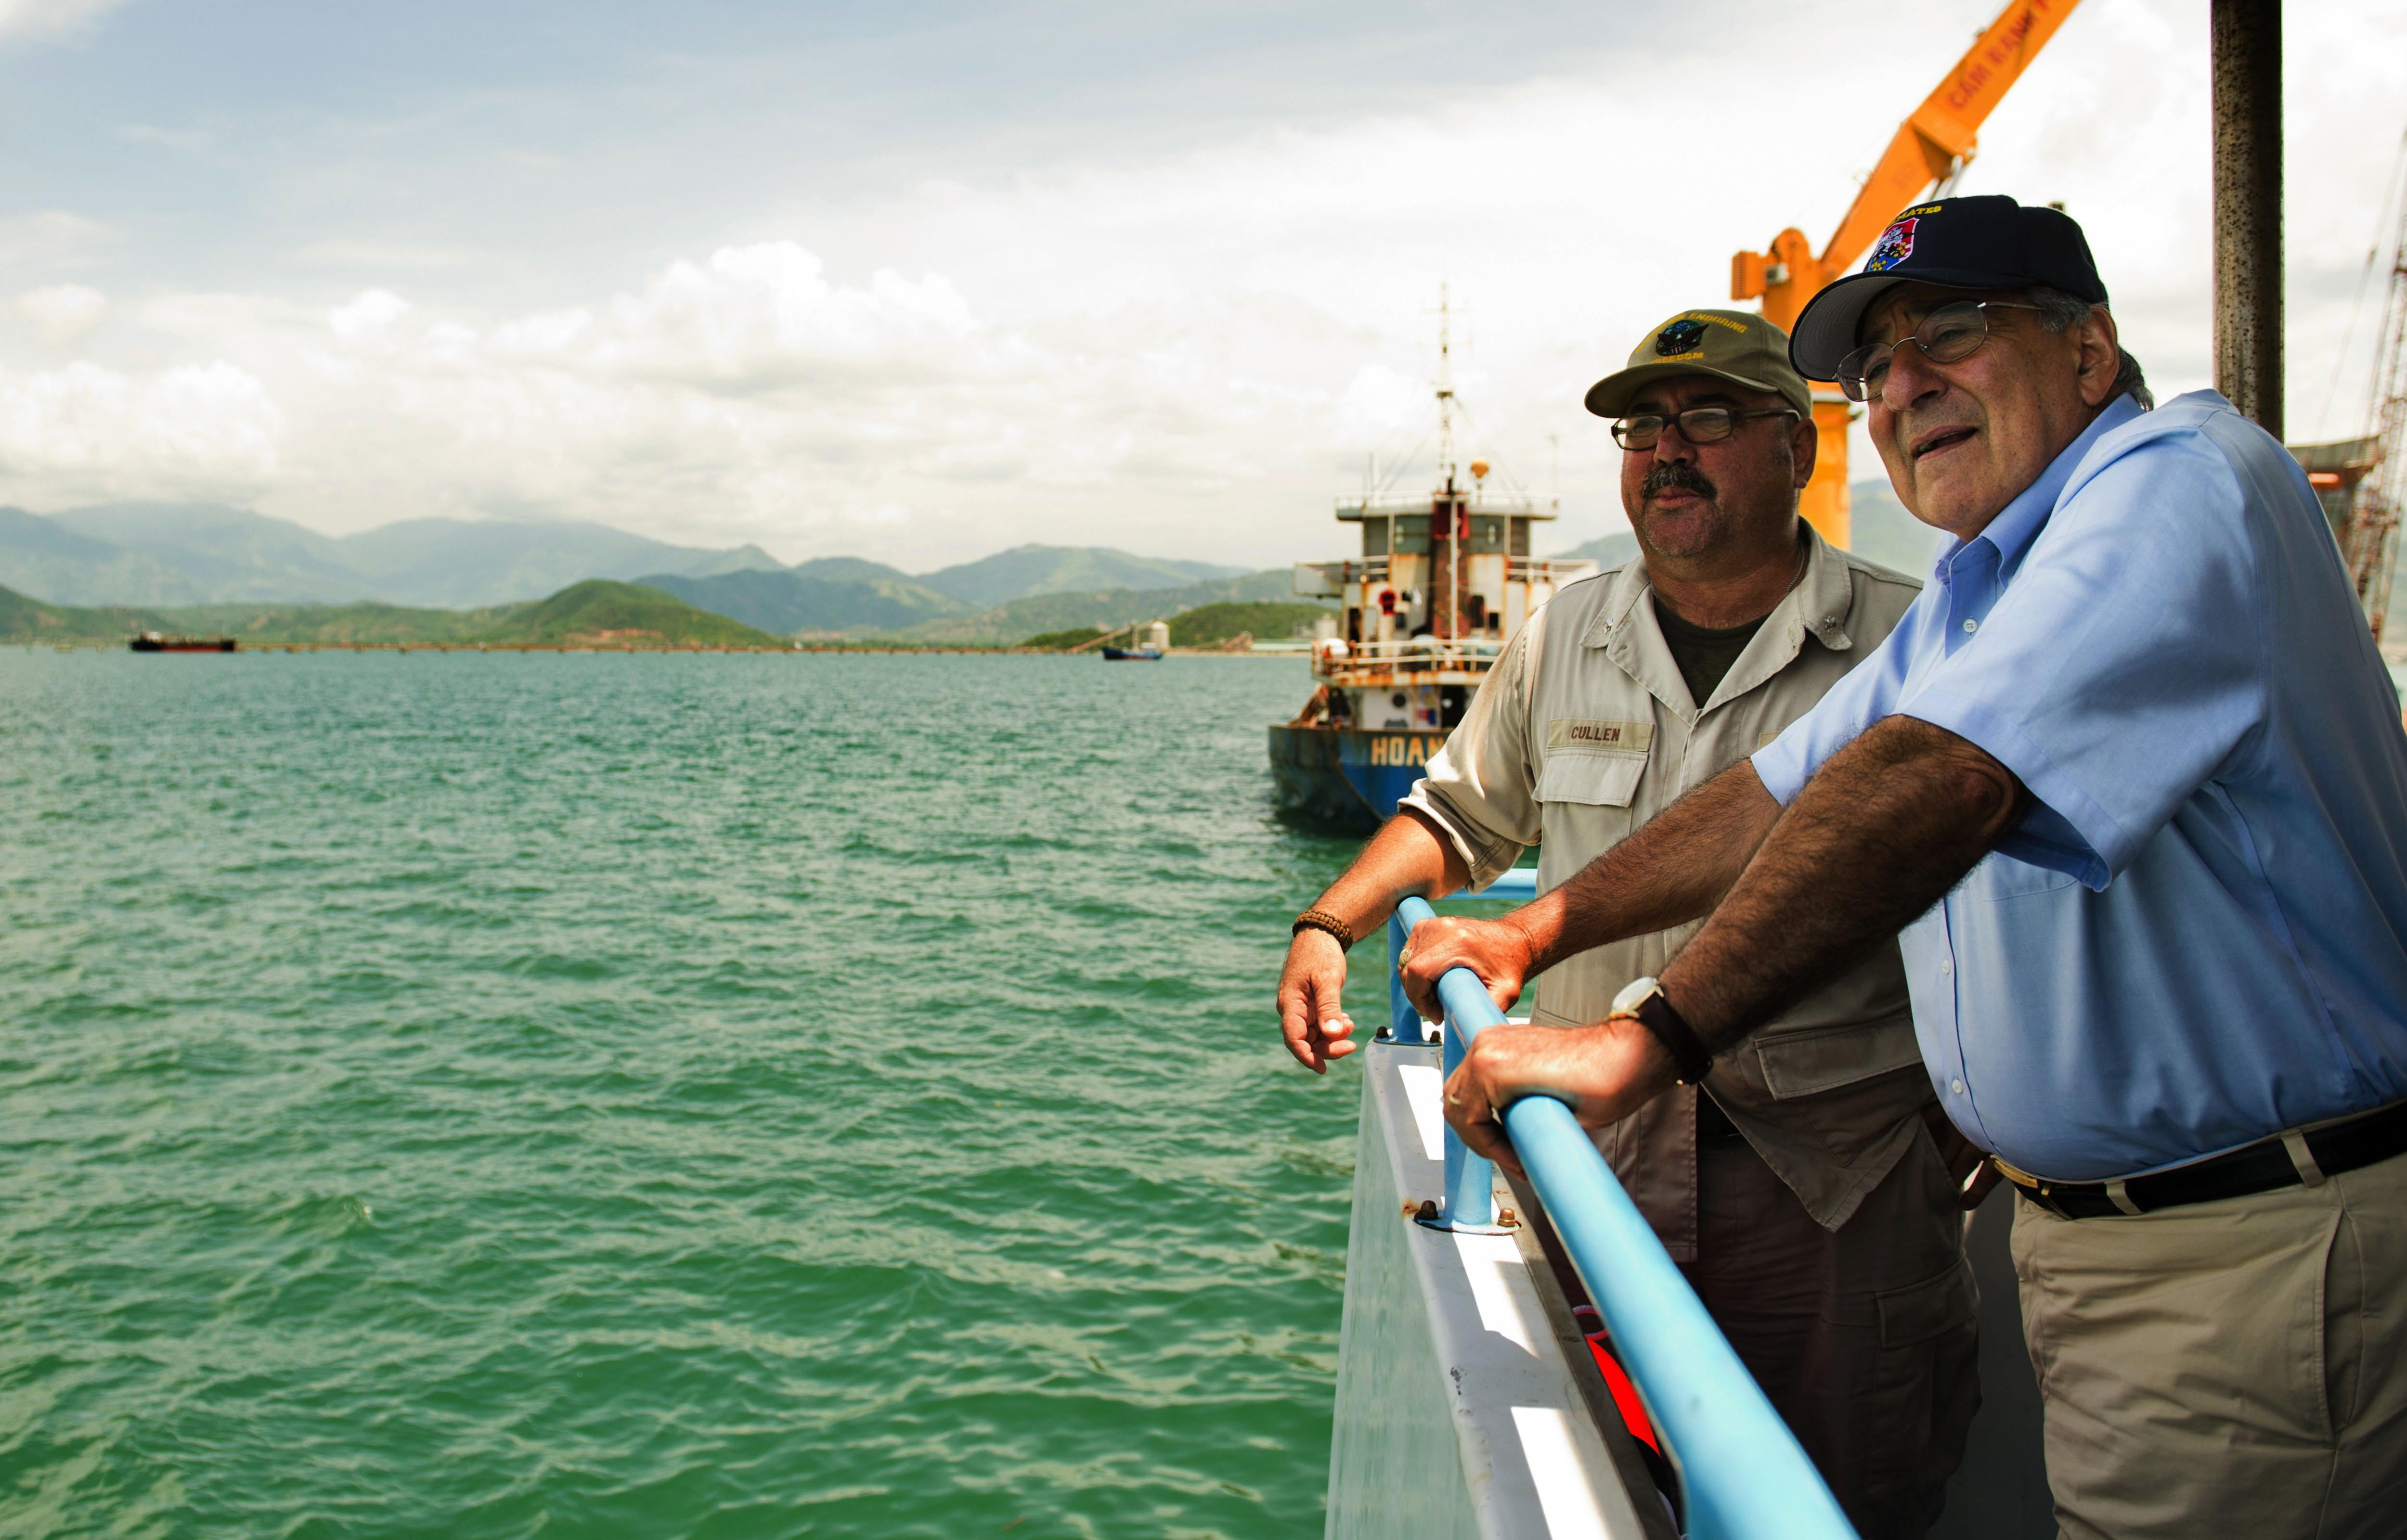 U.S. Secretary of Defense Leon Panetta, right, talks with Chief Mate Fred Cullen as he takes a boat out to a U.S. navy cargo ship USNS Richard E. Byrd in Cam Ranh Bay, Vietnam, Sunday, June 3, 2012. (AP Photo/Jim Watson, Pool)